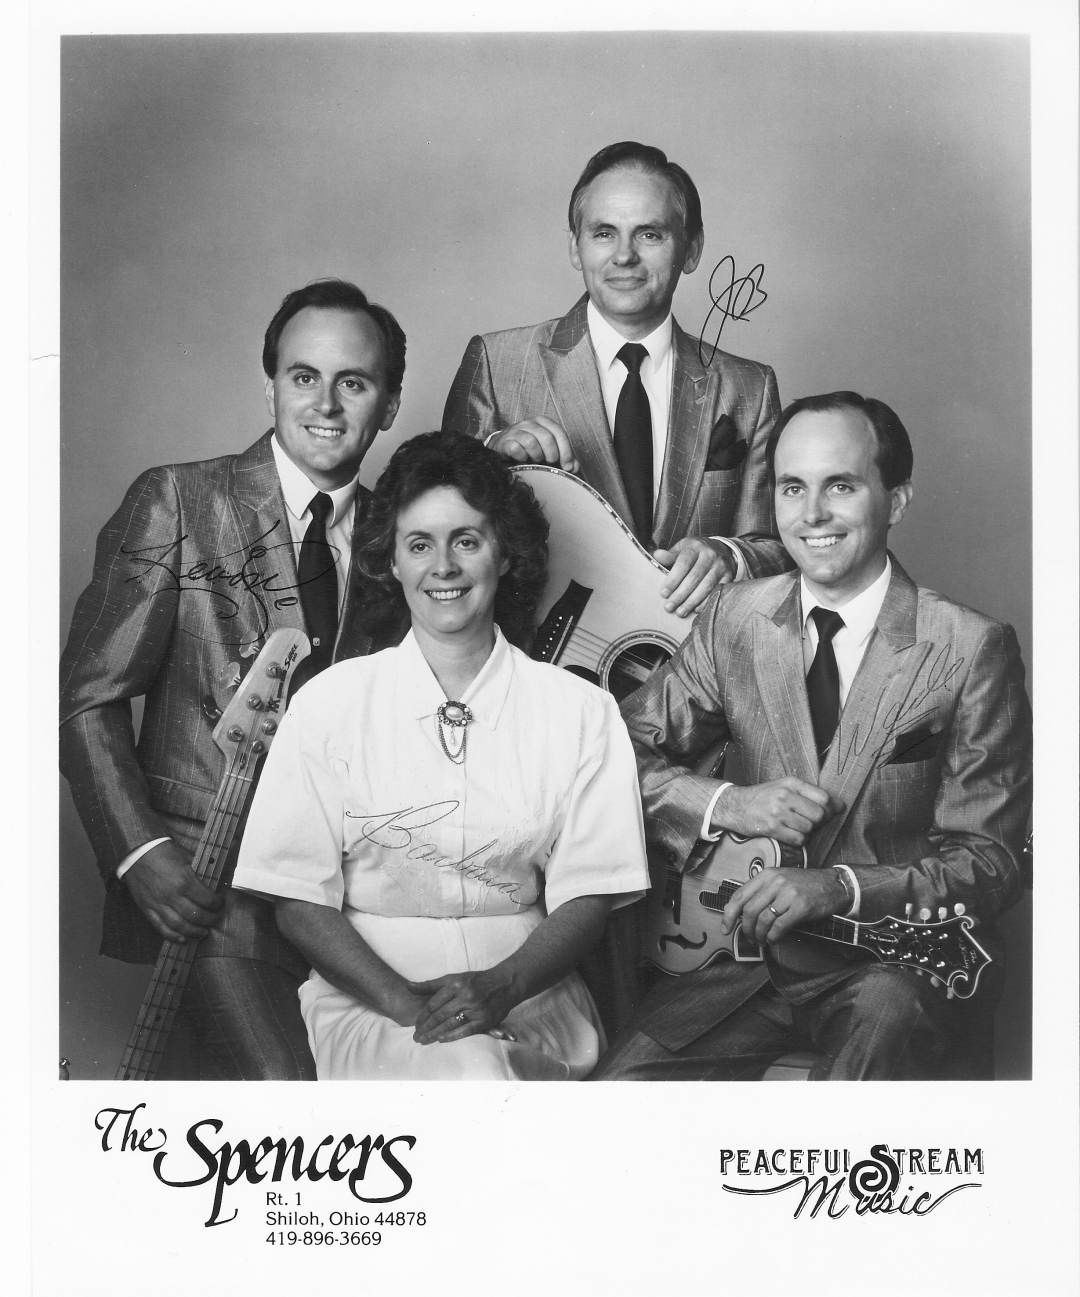 The Spencers 1987